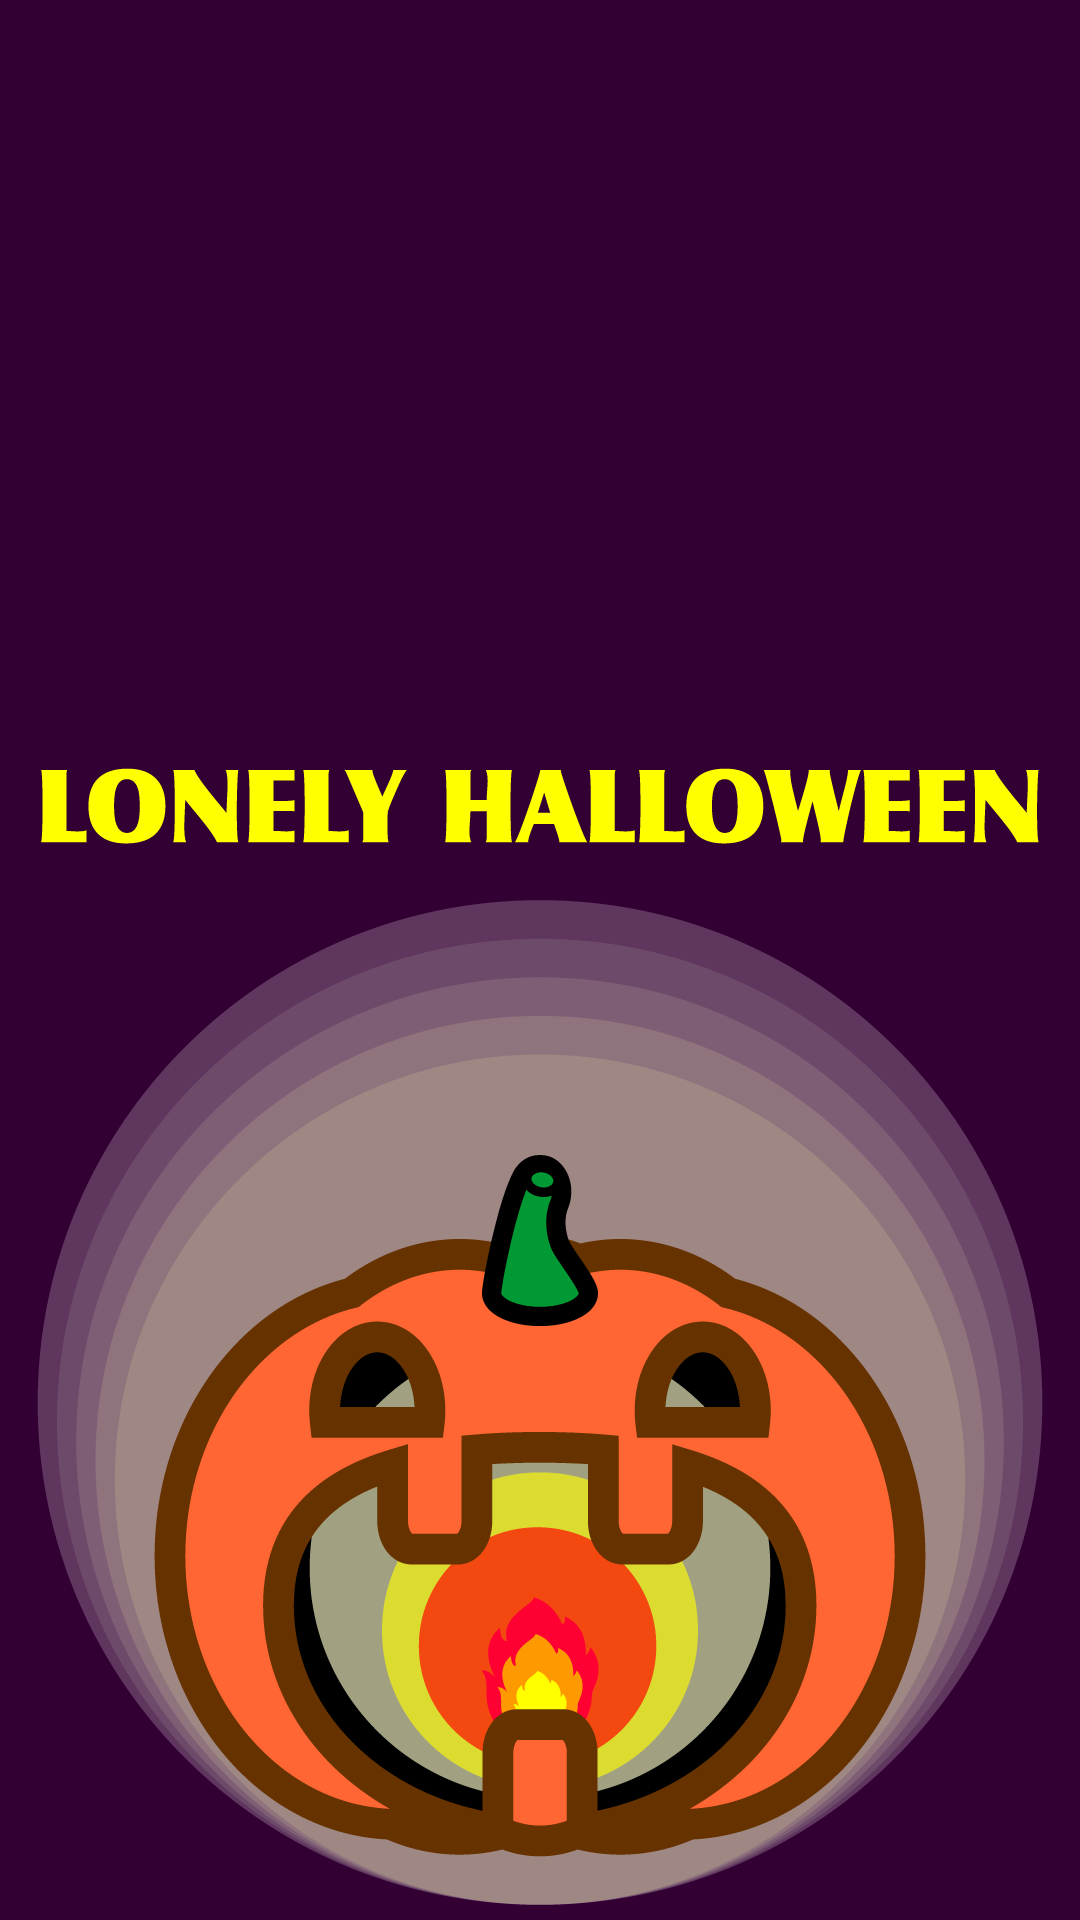 wallpaper2_lonely-halloween-iphone